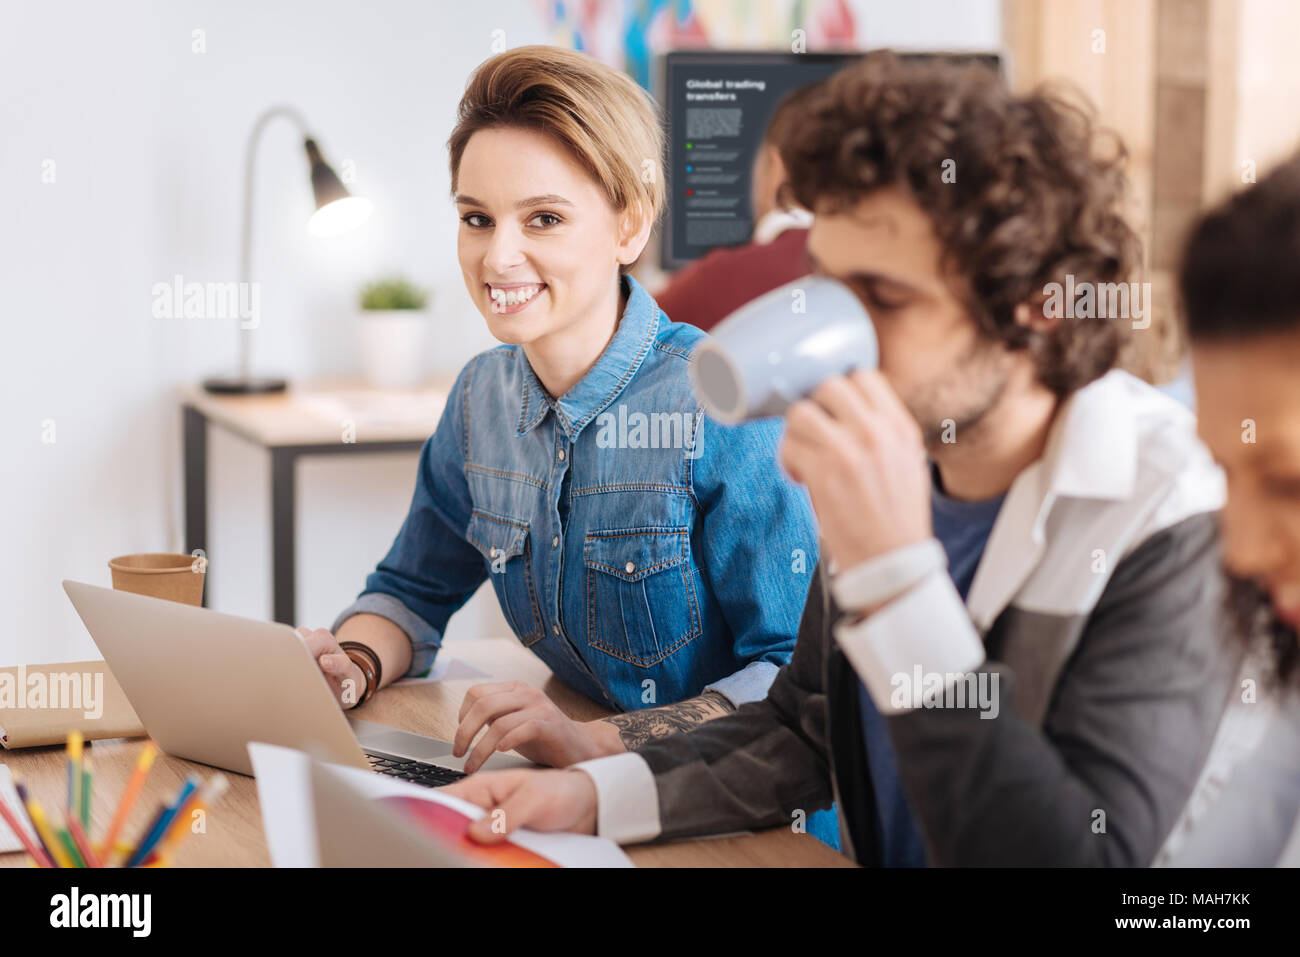 Alert woman working with her co-workers - Stock Image